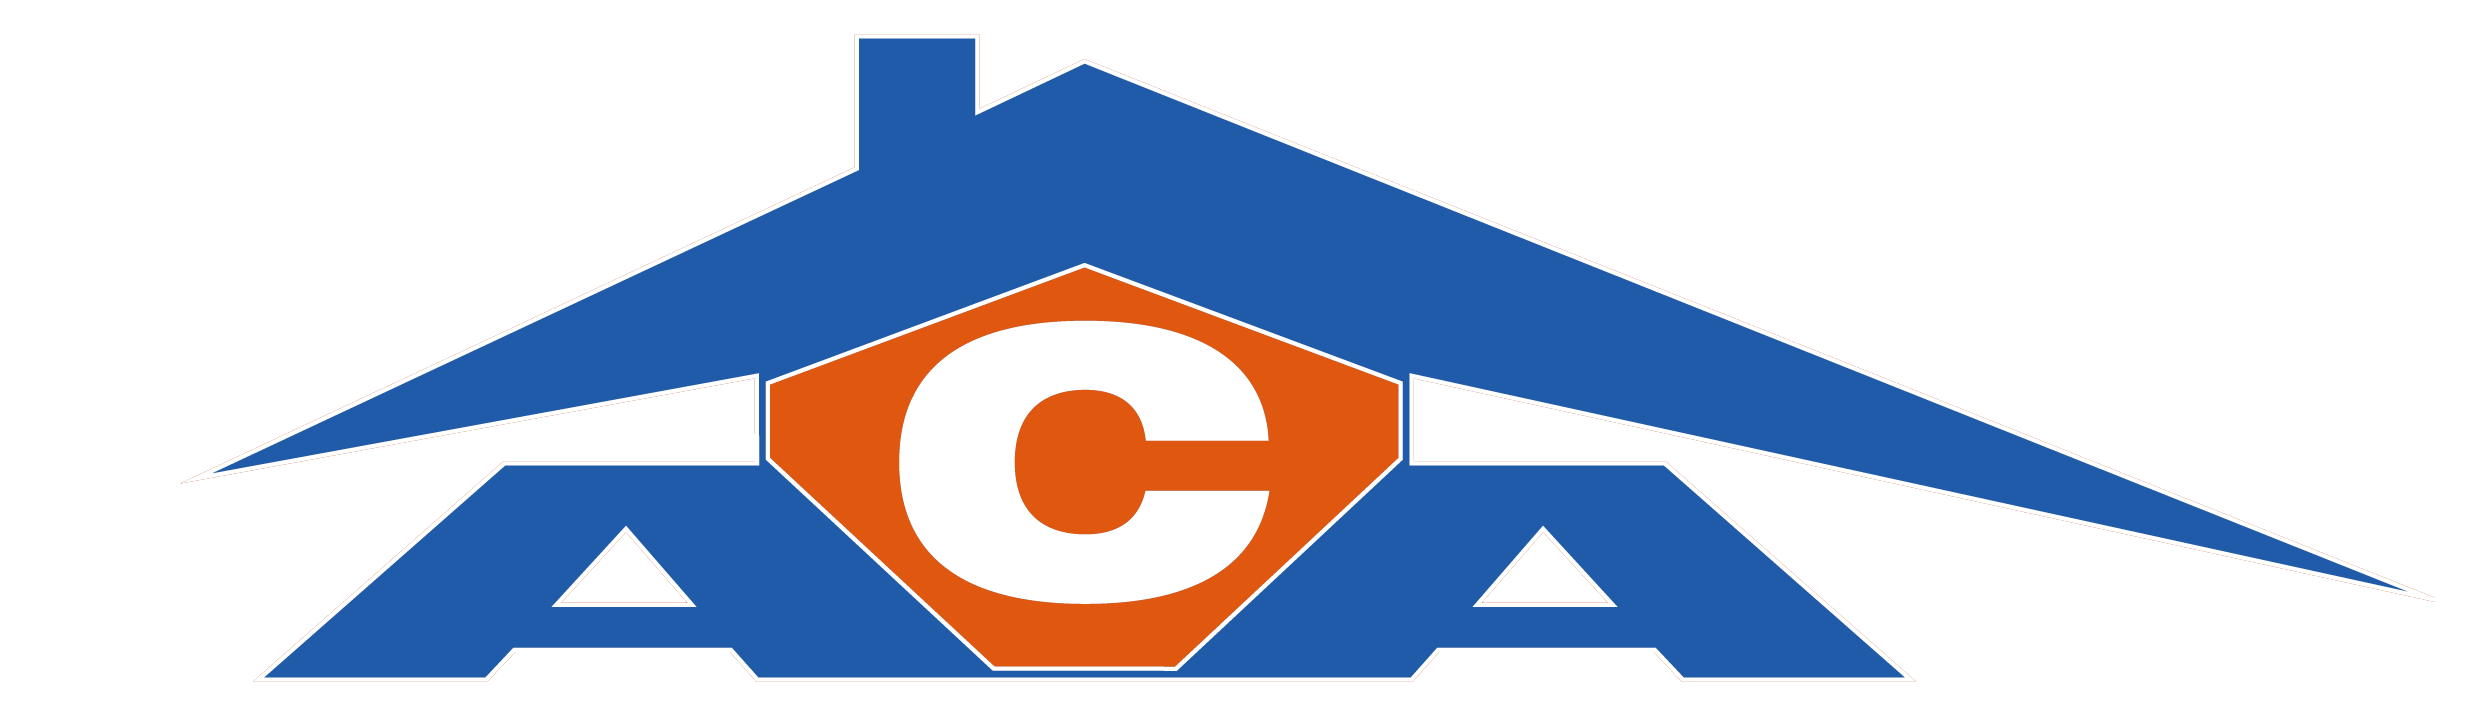 ACA Roofing Companies & Roofing Contractors Chicago